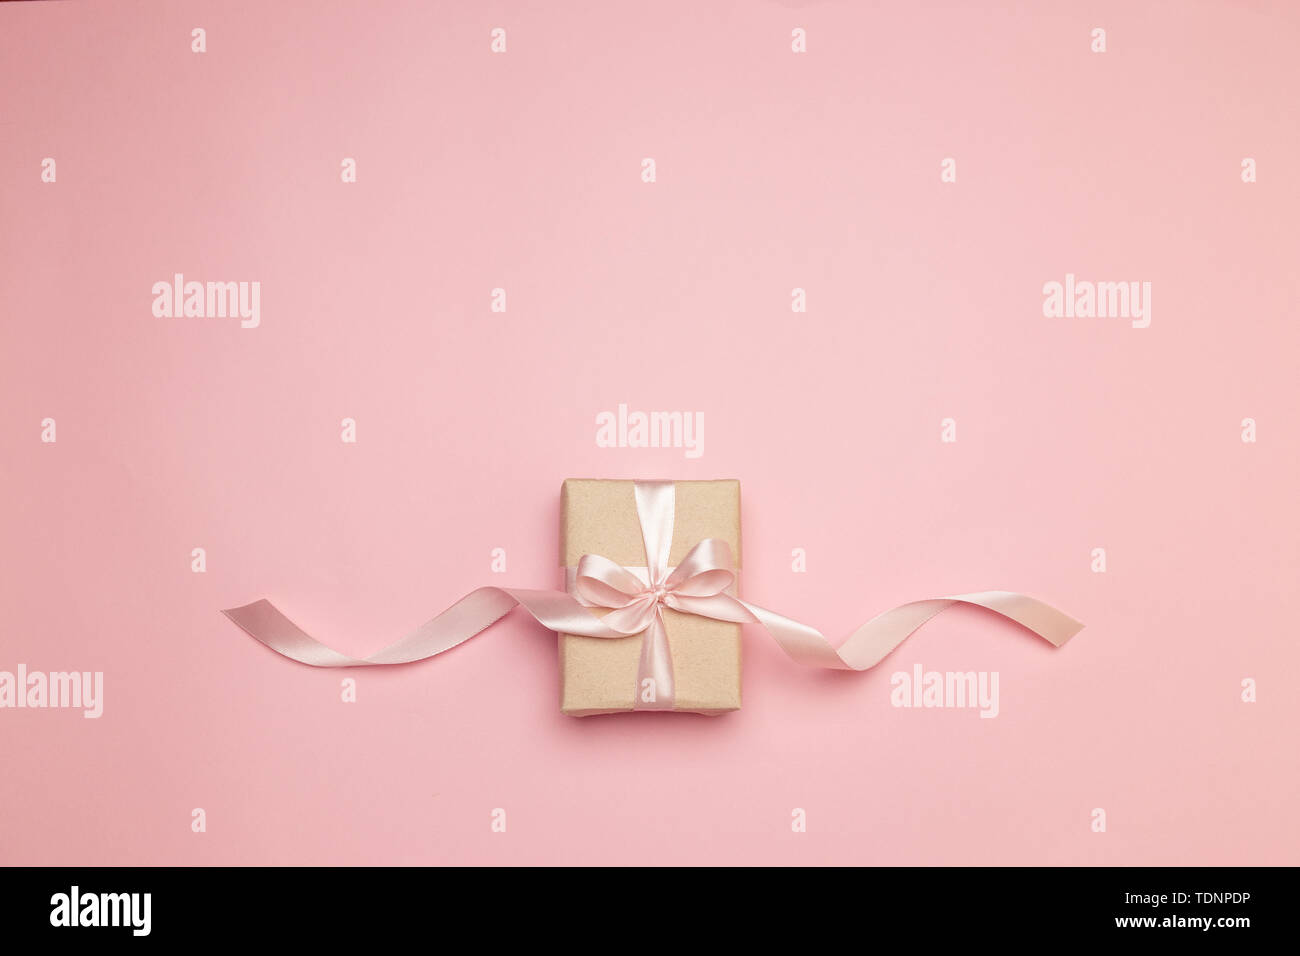 Minimalism concept. Holiday banner. Flat lay top view crafting paper gift on pink background. - Stock Image